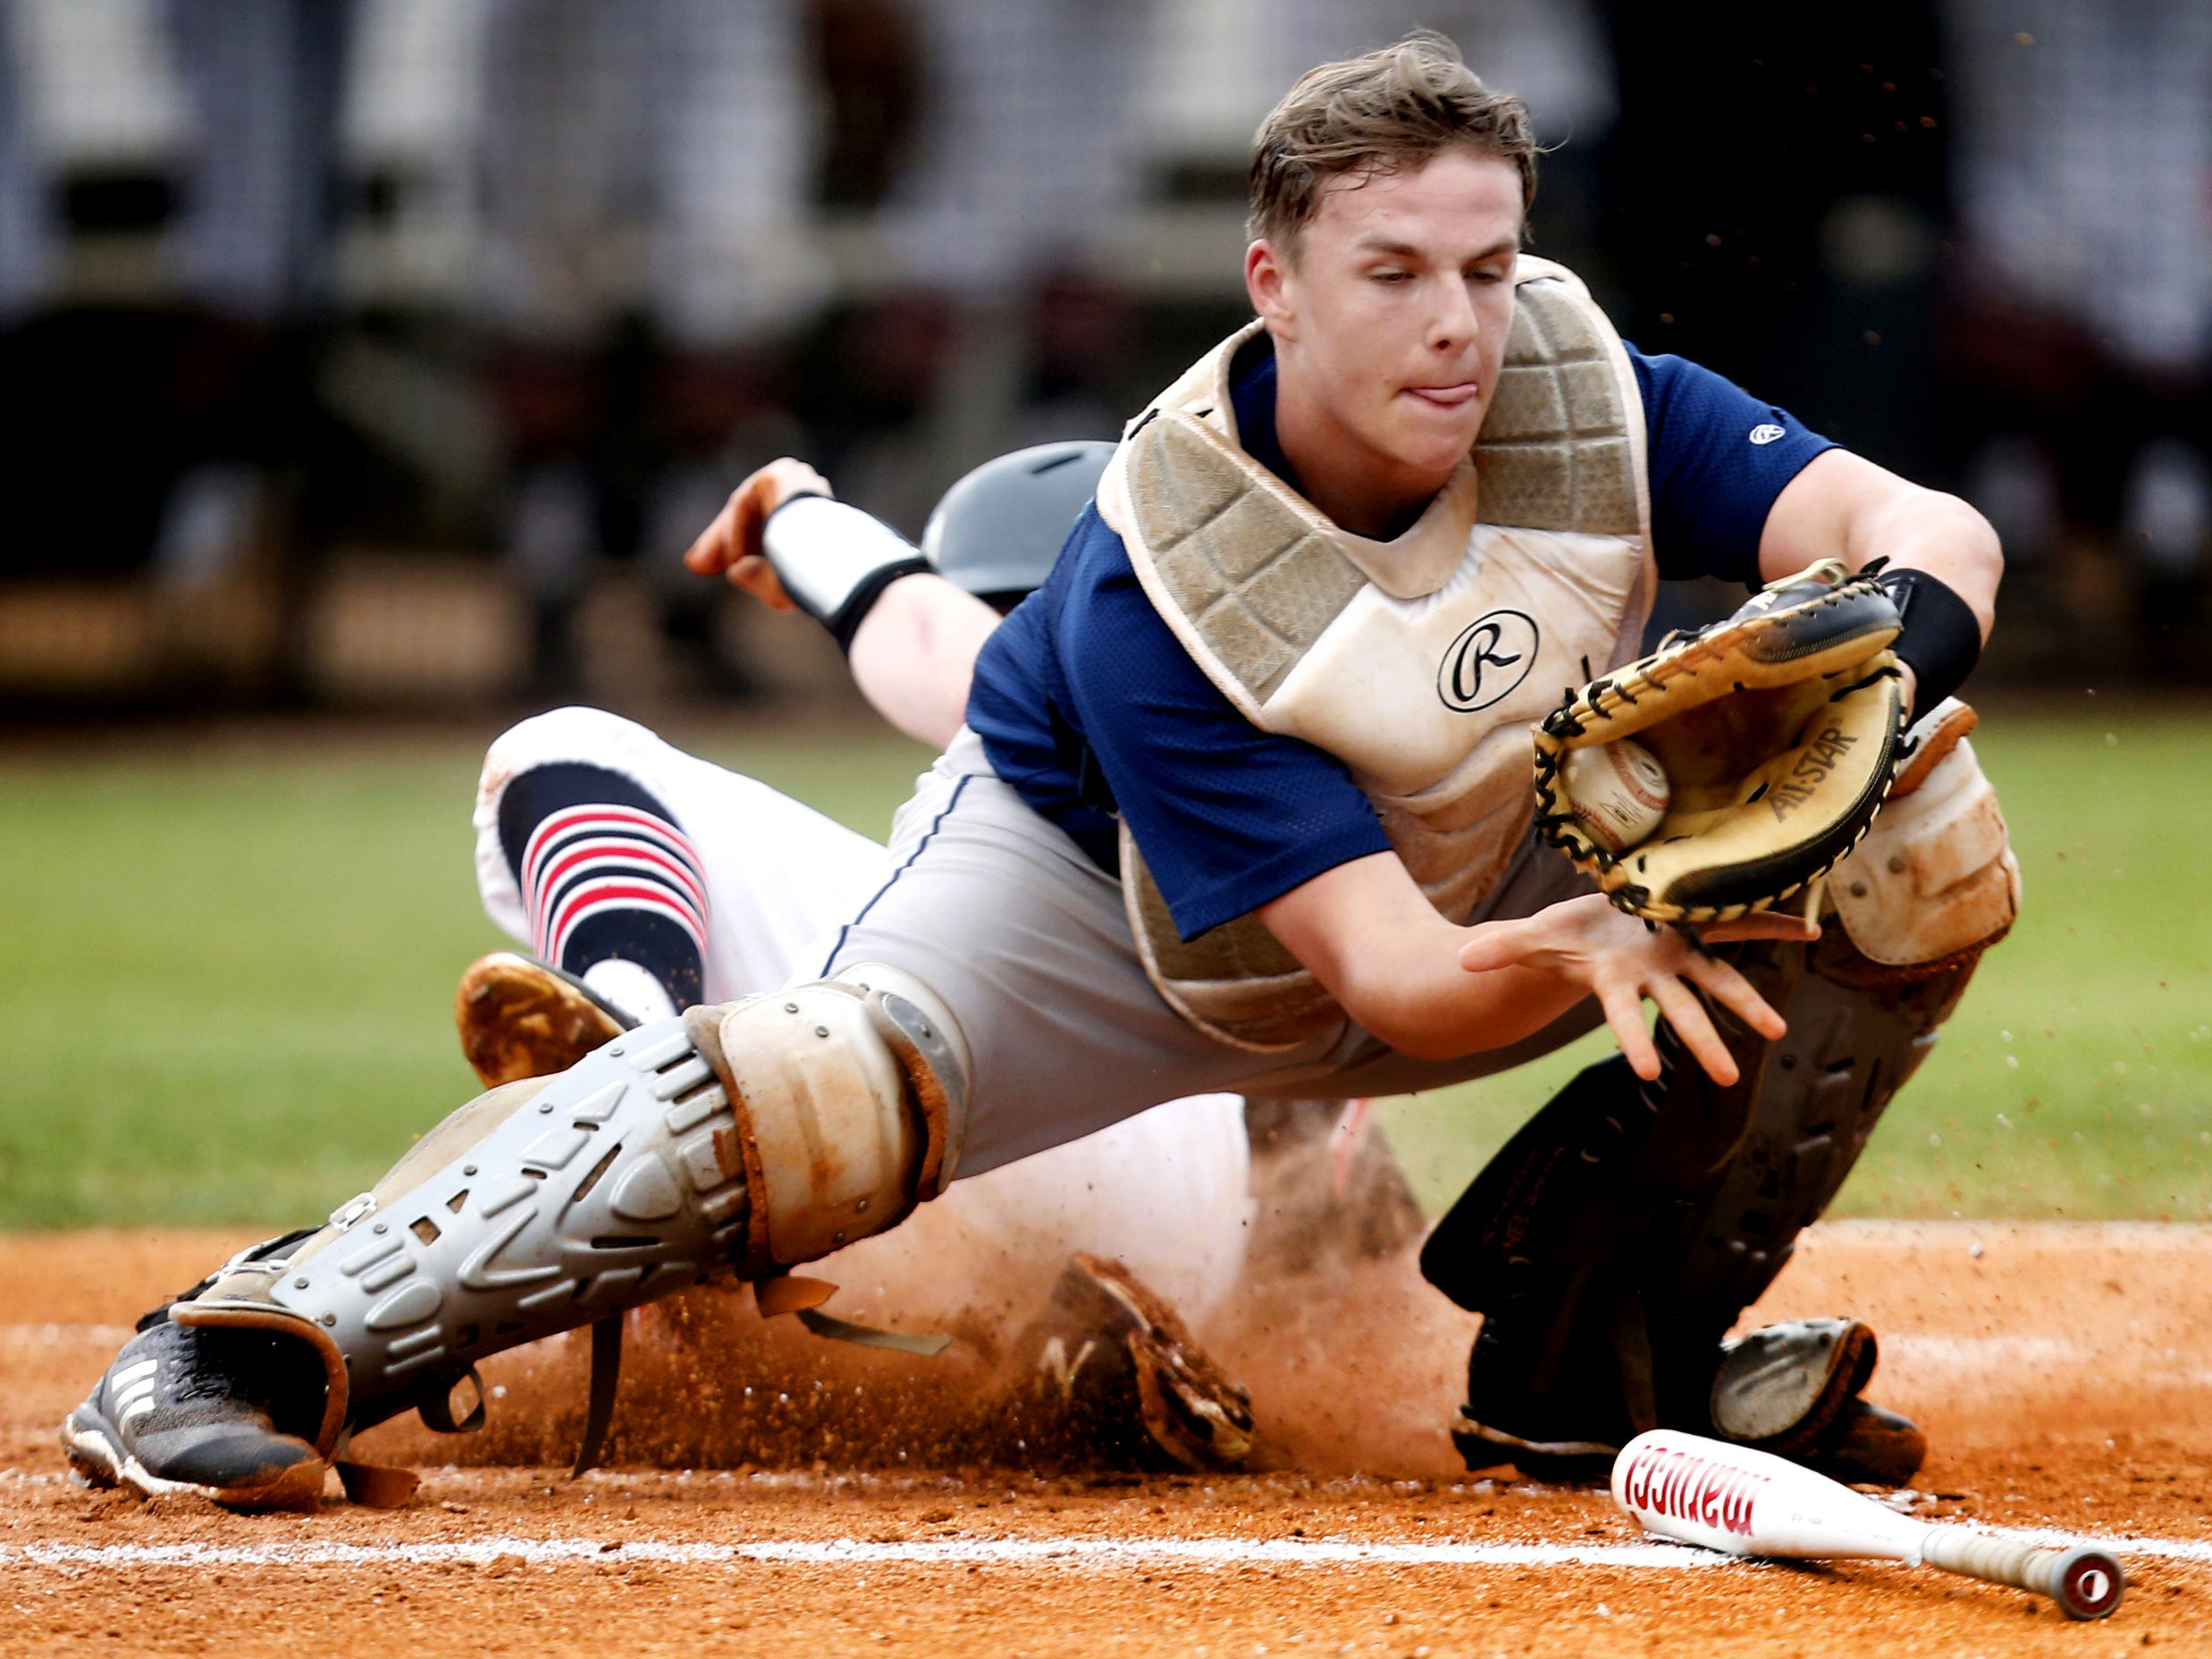 Stewarts Creek's Kaine Severance (27) slides into home to score as Siegel's catcher Jackson Cauthron (18) catches the ball during the Region 4-AAA baseball title game on Tuesday, May 15, 2018, at Stewarts Creek.